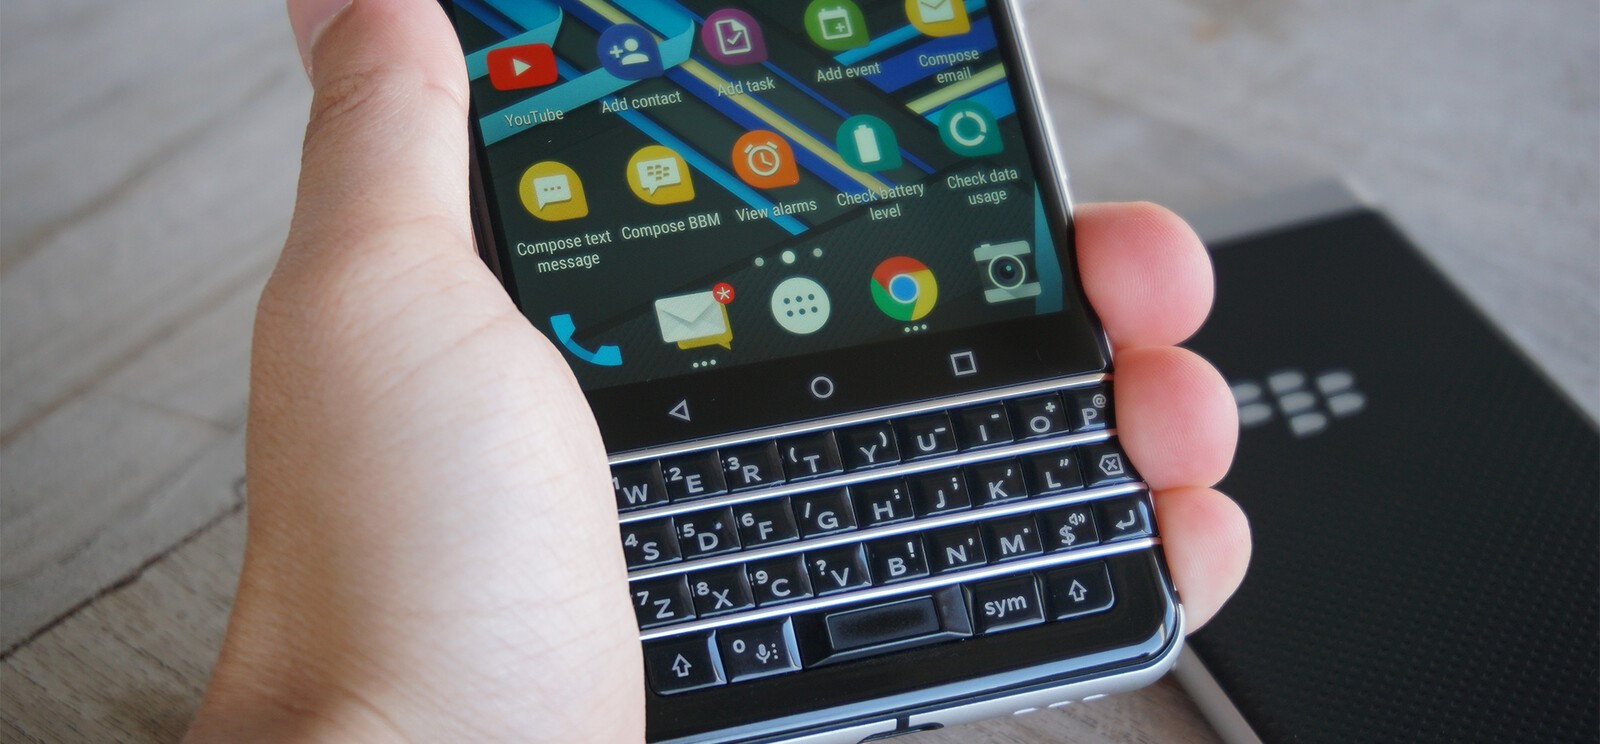 how to set up exchange e mail on the blackberry keyone crackberry com rh crackberry com Check BlackBerry Email Check BlackBerry Email